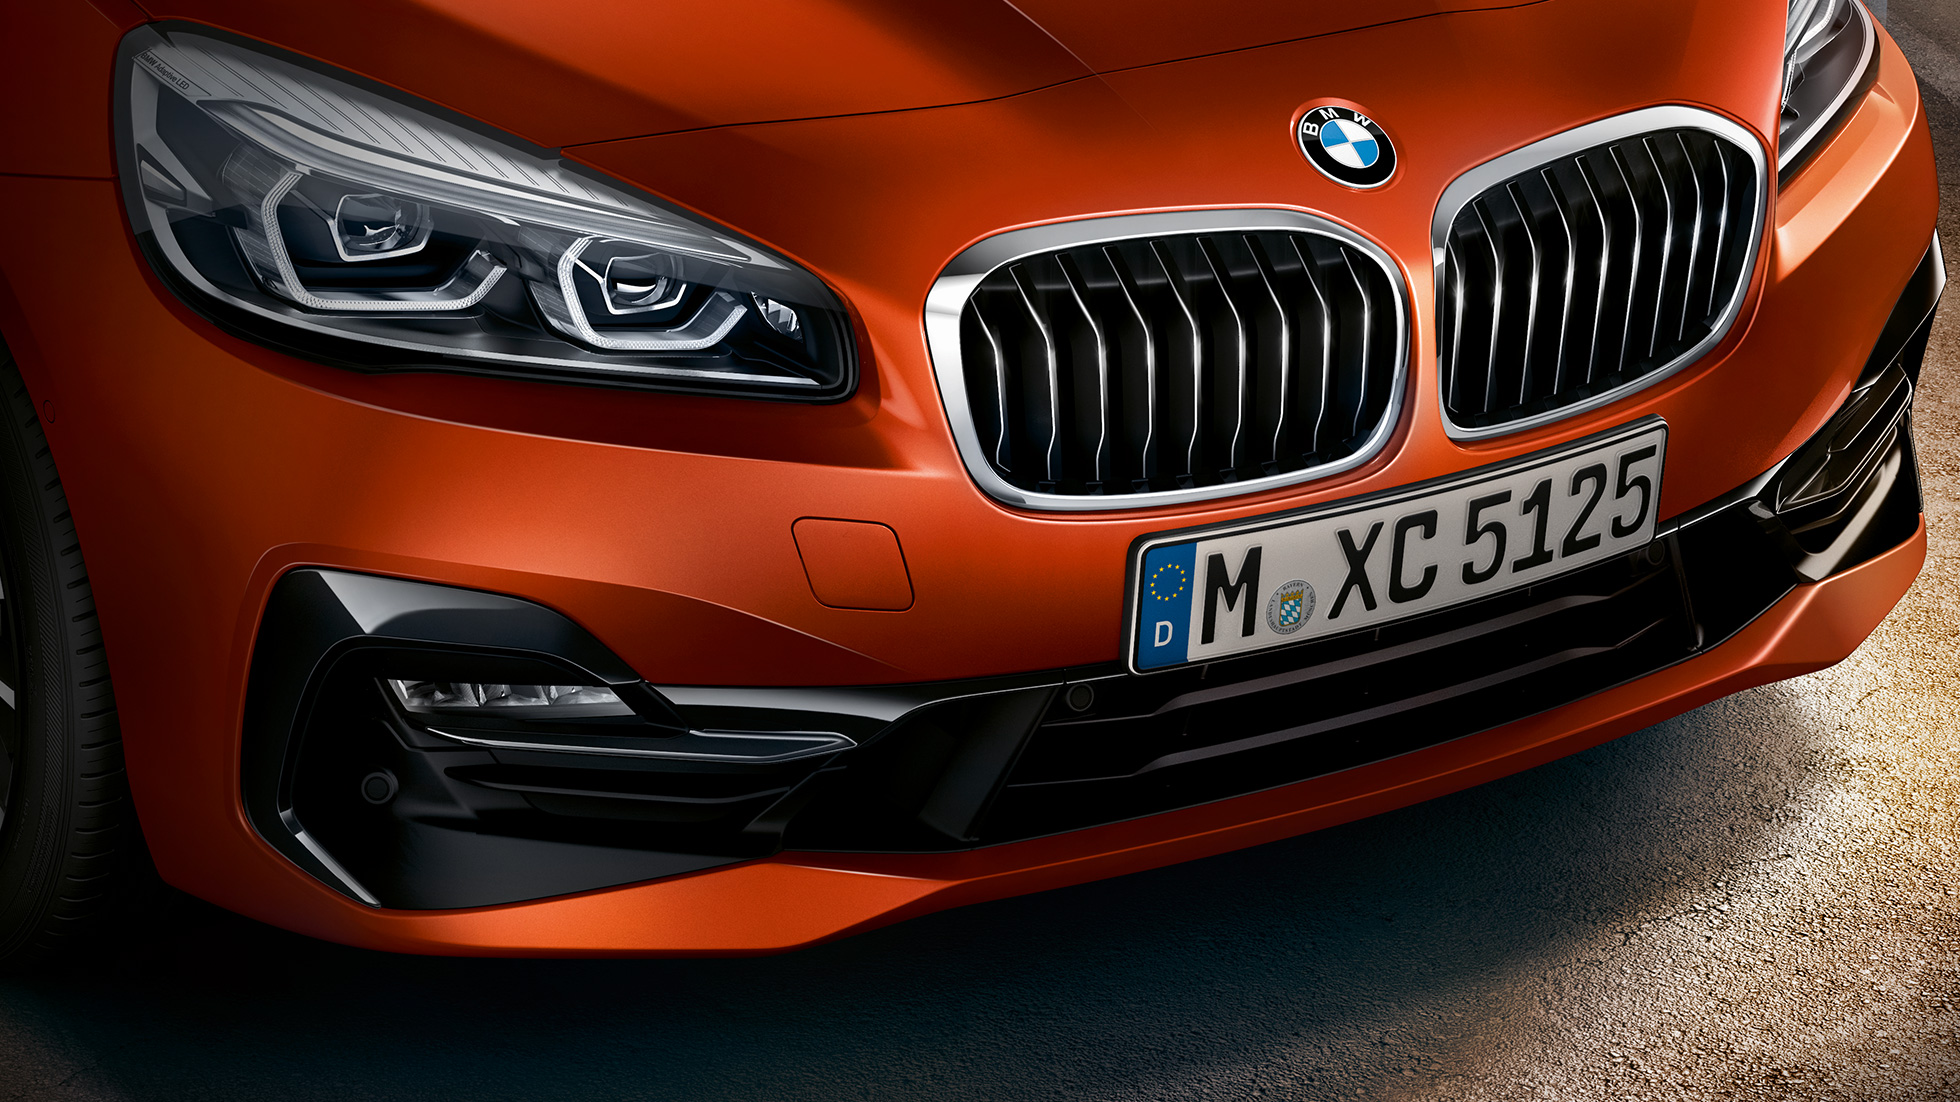 Dobbeltnyre BMW 2-serie Active Tourer F45 Facelift 2018 Sunset Orange Metallic nærbillede af front